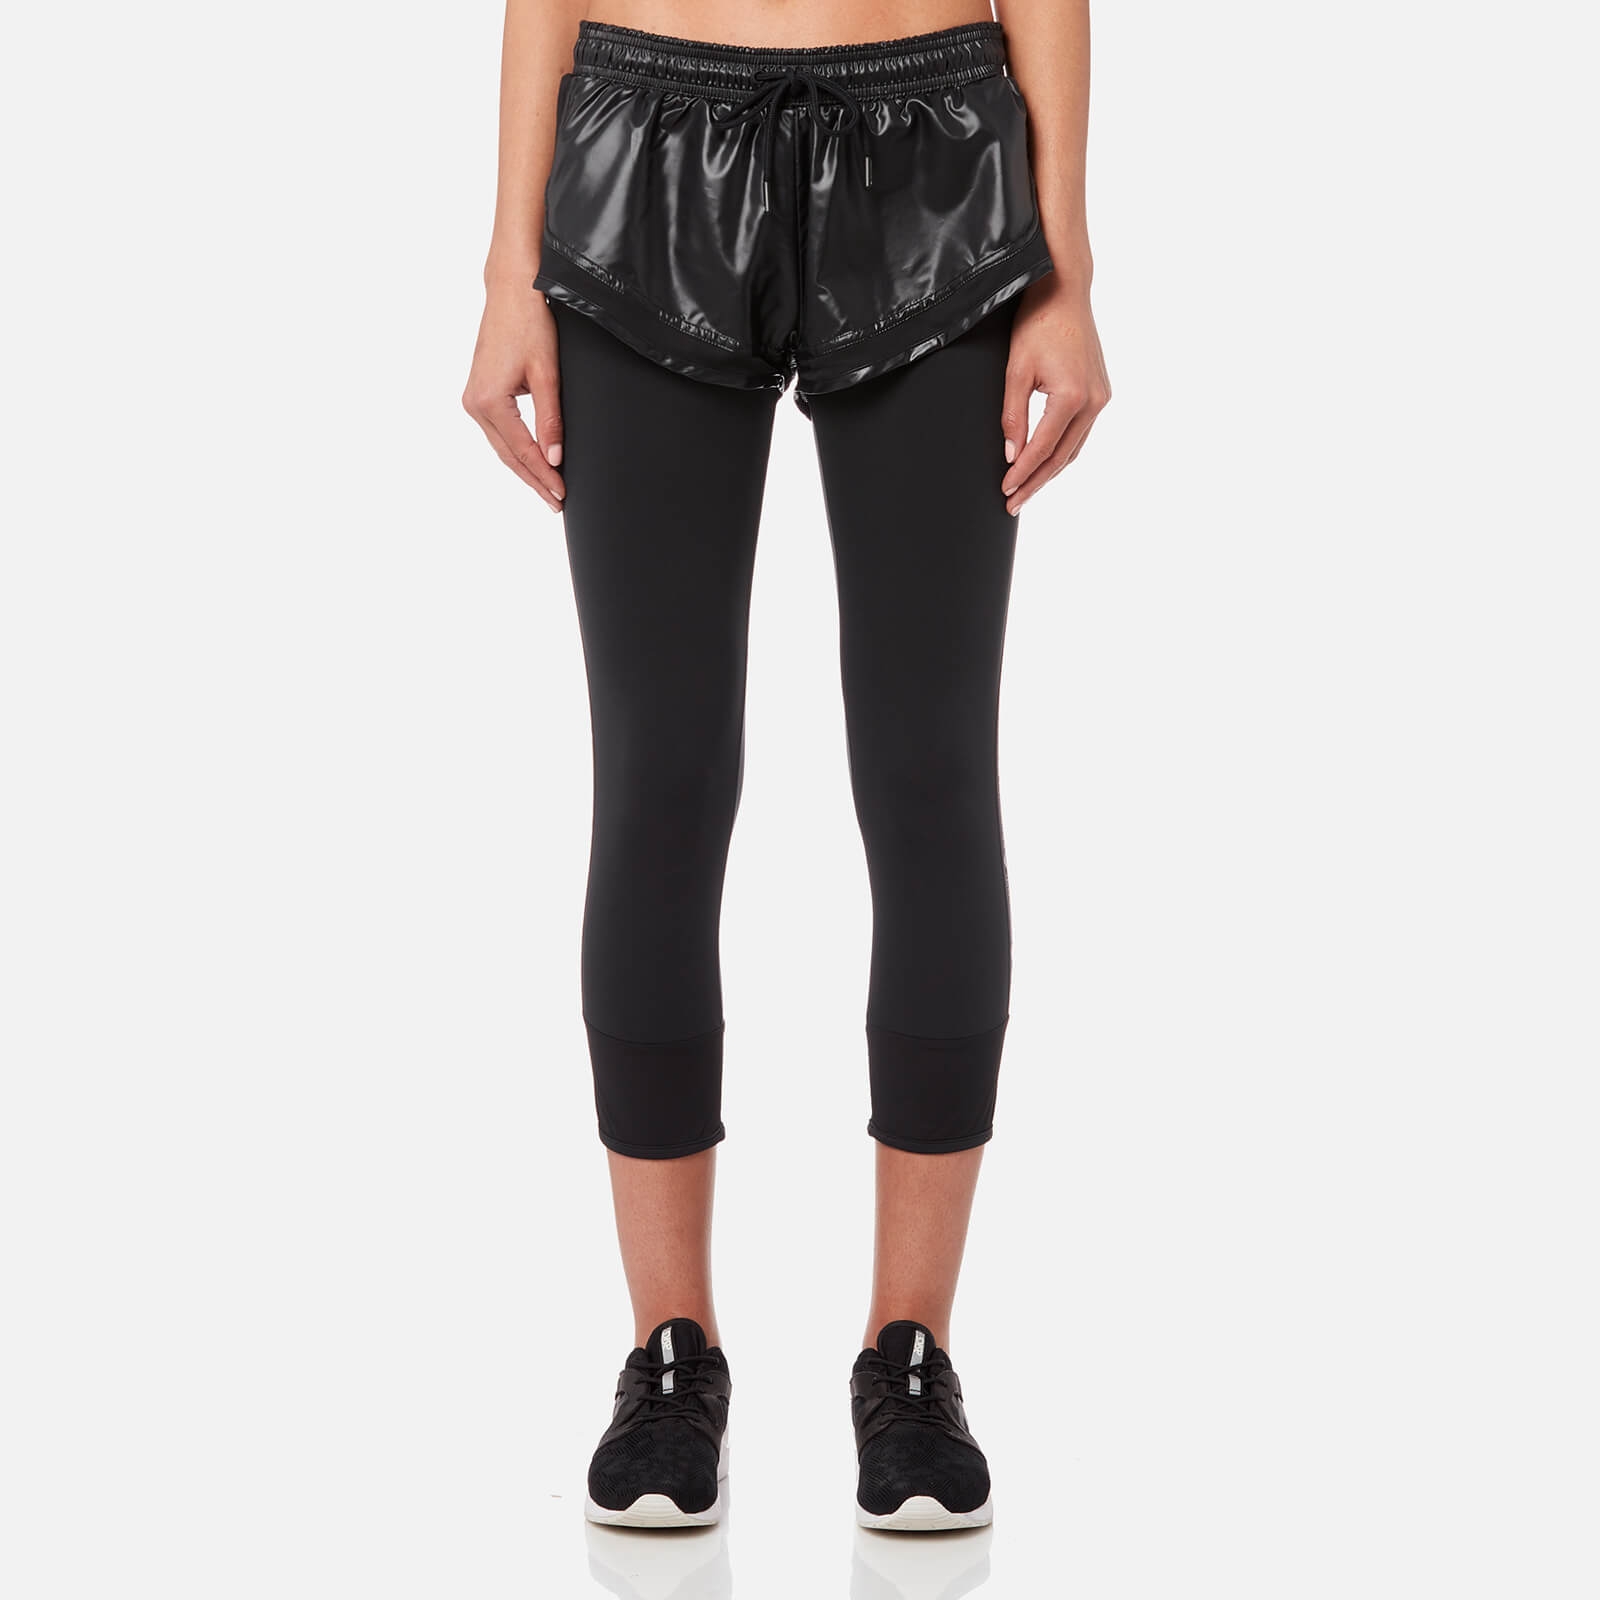 91cdcfb8915a adidas by Stella McCartney Women s Essential Short Over Tights - Black -  Free UK Delivery over £50